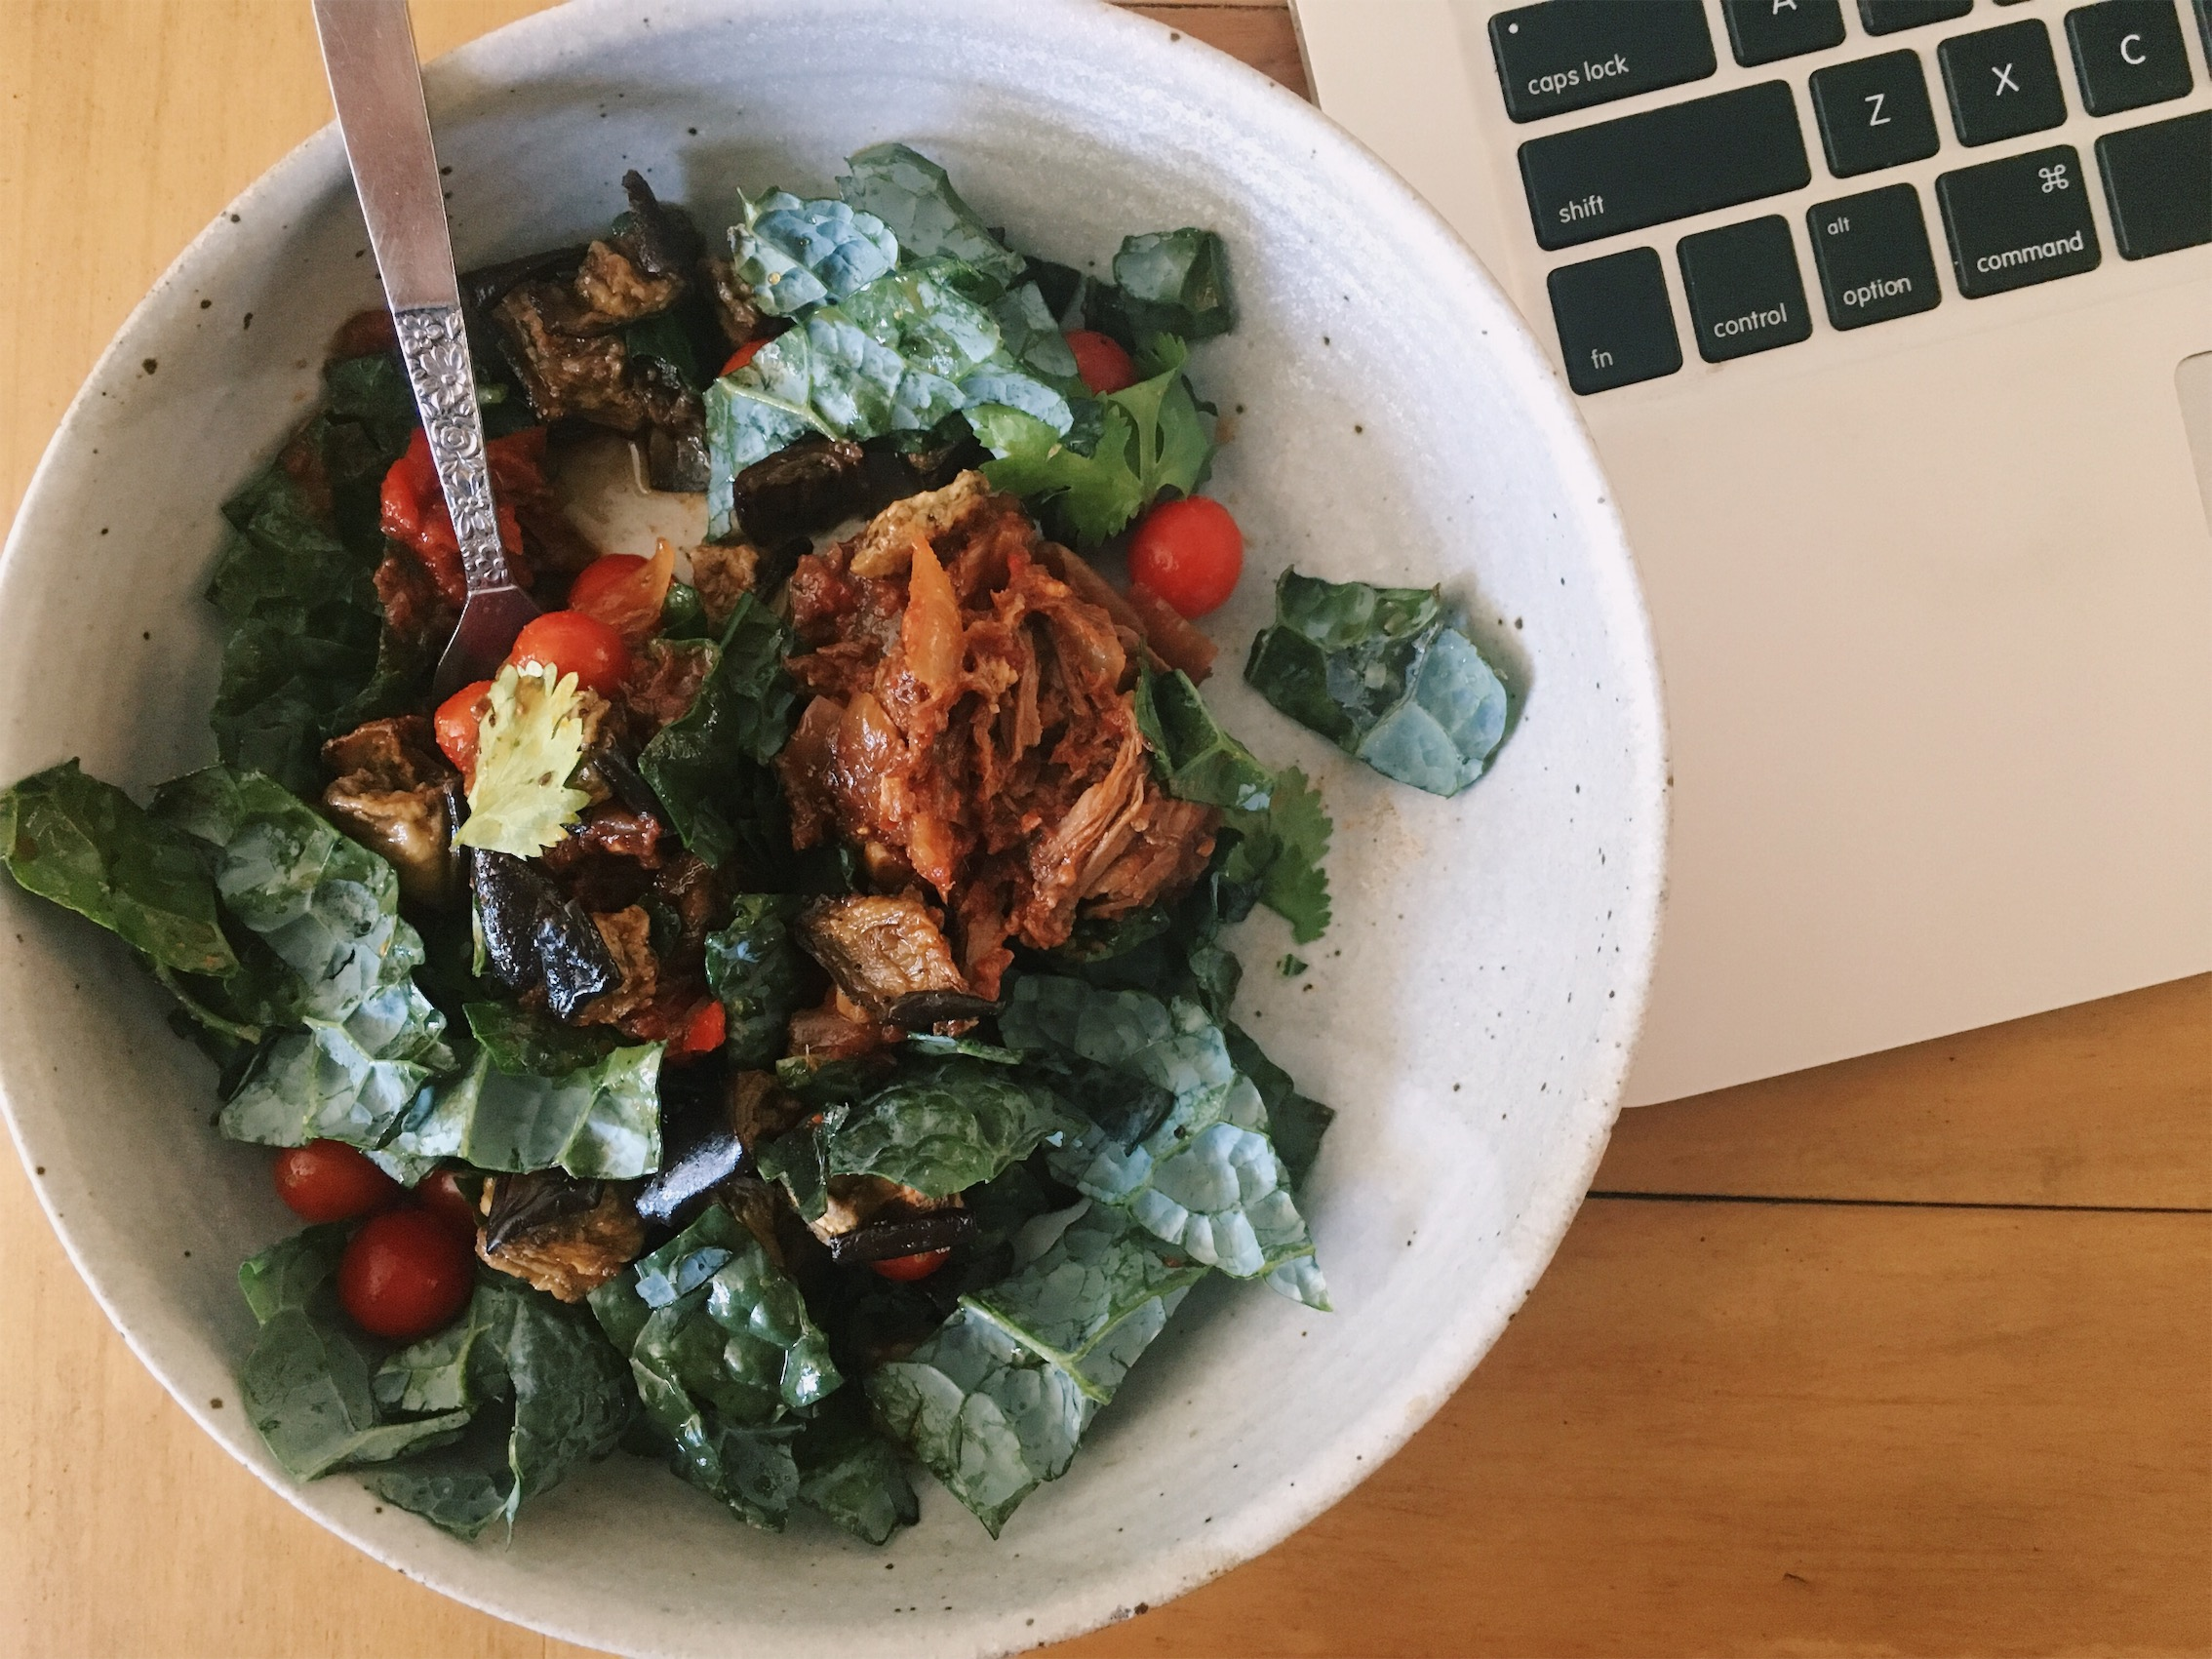 2:30 pm - I spent the entire morning / early afternoon with clients and this was the first time I had time to eat lunch! Slow cooked steak (recipe to be posted soon) + chopped kale, cherry tomatoes and roasted eggplant.